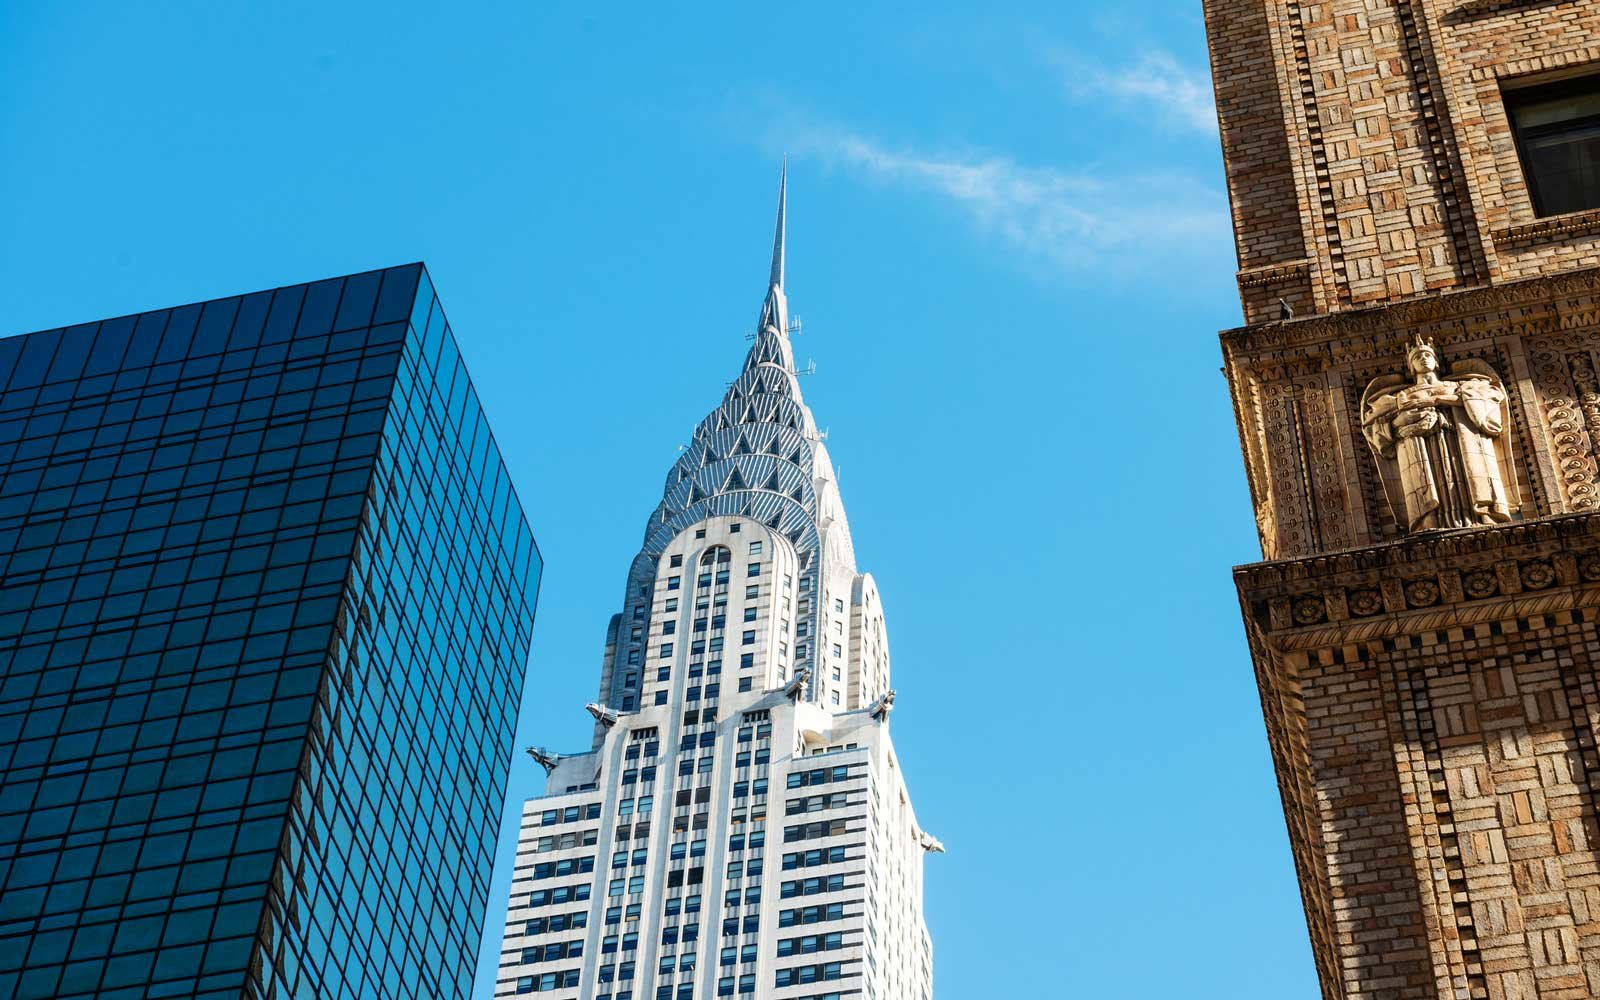 chrysler building on flipboard manhattan ny austria new york city. Black Bedroom Furniture Sets. Home Design Ideas